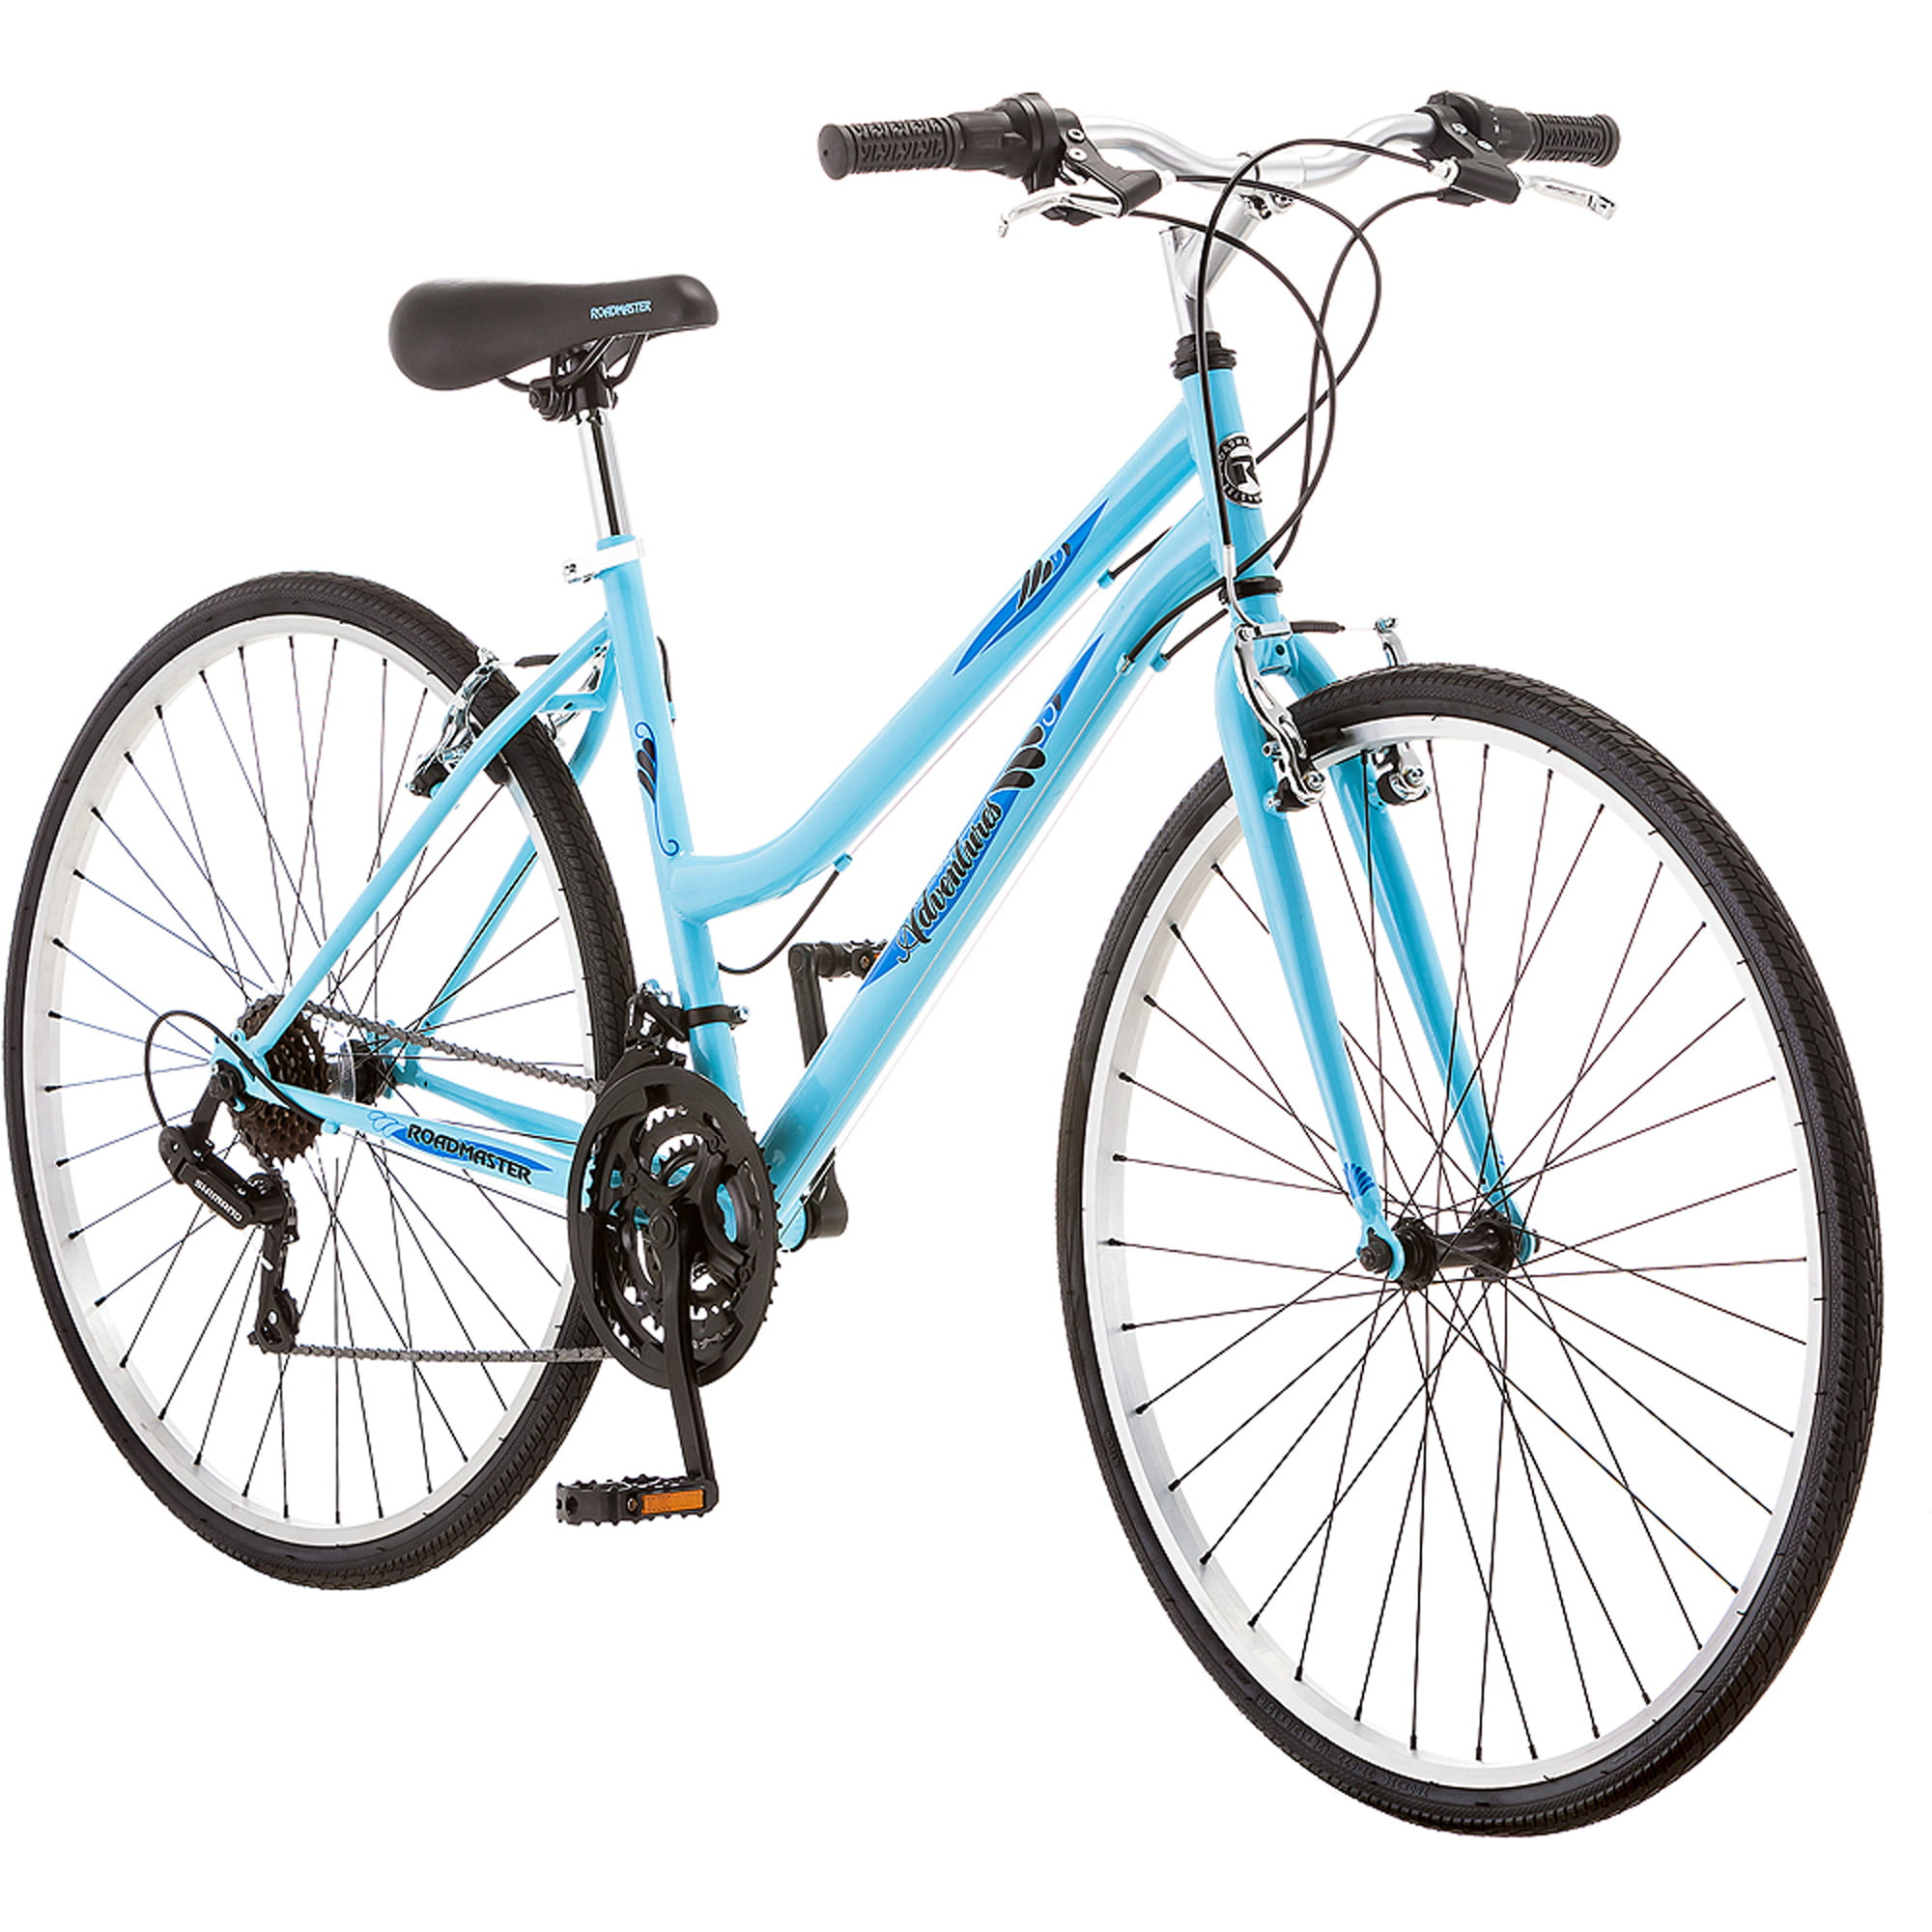 700c Roadmaster Adventures Women's Hybrid Bike, Light Blue by Pacific Cycle